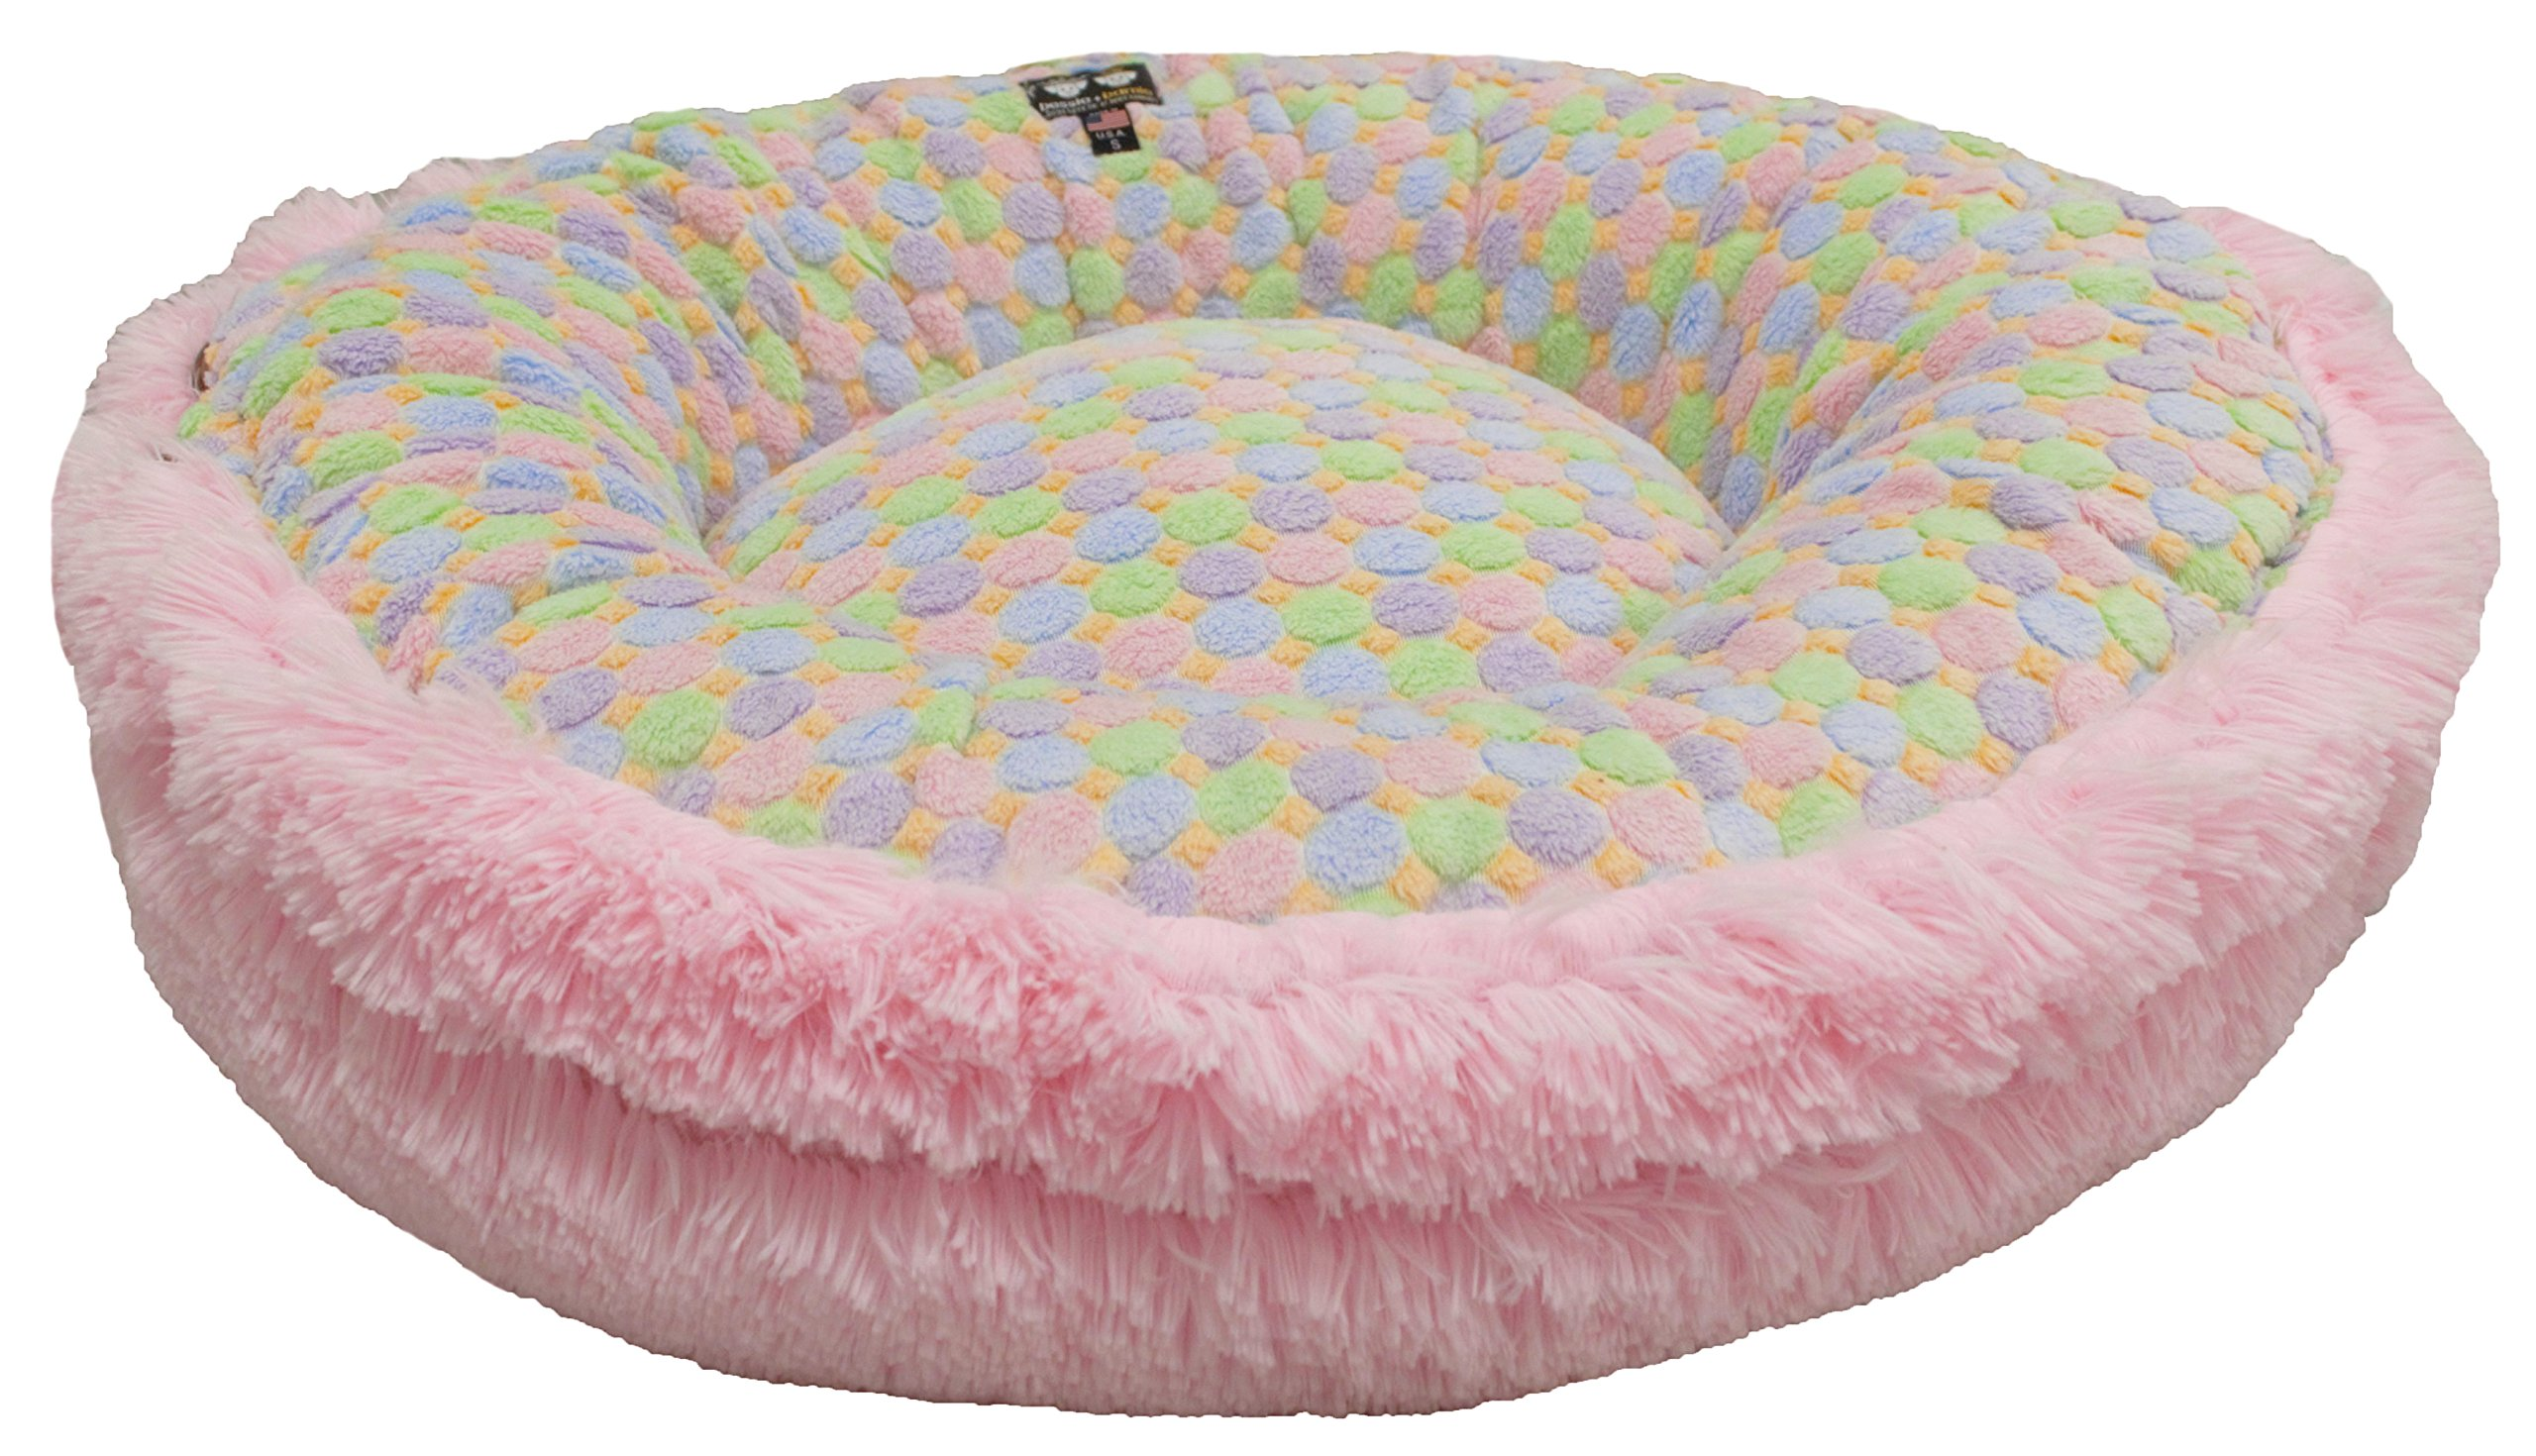 BESSIE AND BARNIE Ice Cream/Bubble Gum Luxury Shag Ultra Plush Faux Fur Bagelette Pet/Dog Bed (Multiple Sizes) by BESSIE AND BARNIE (Image #2)